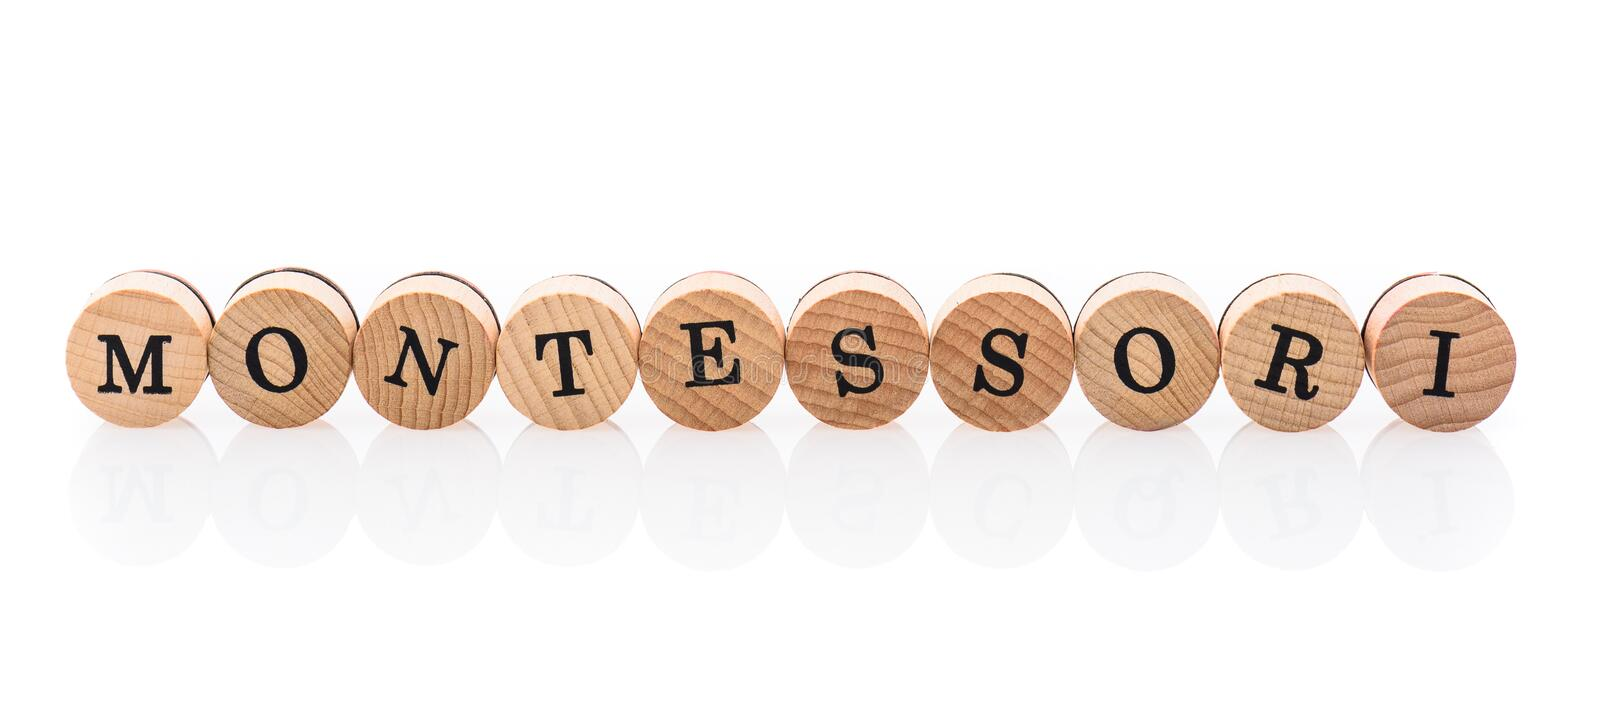 Word Montessori from circular wooden tiles with letters children toy. royalty free illustration